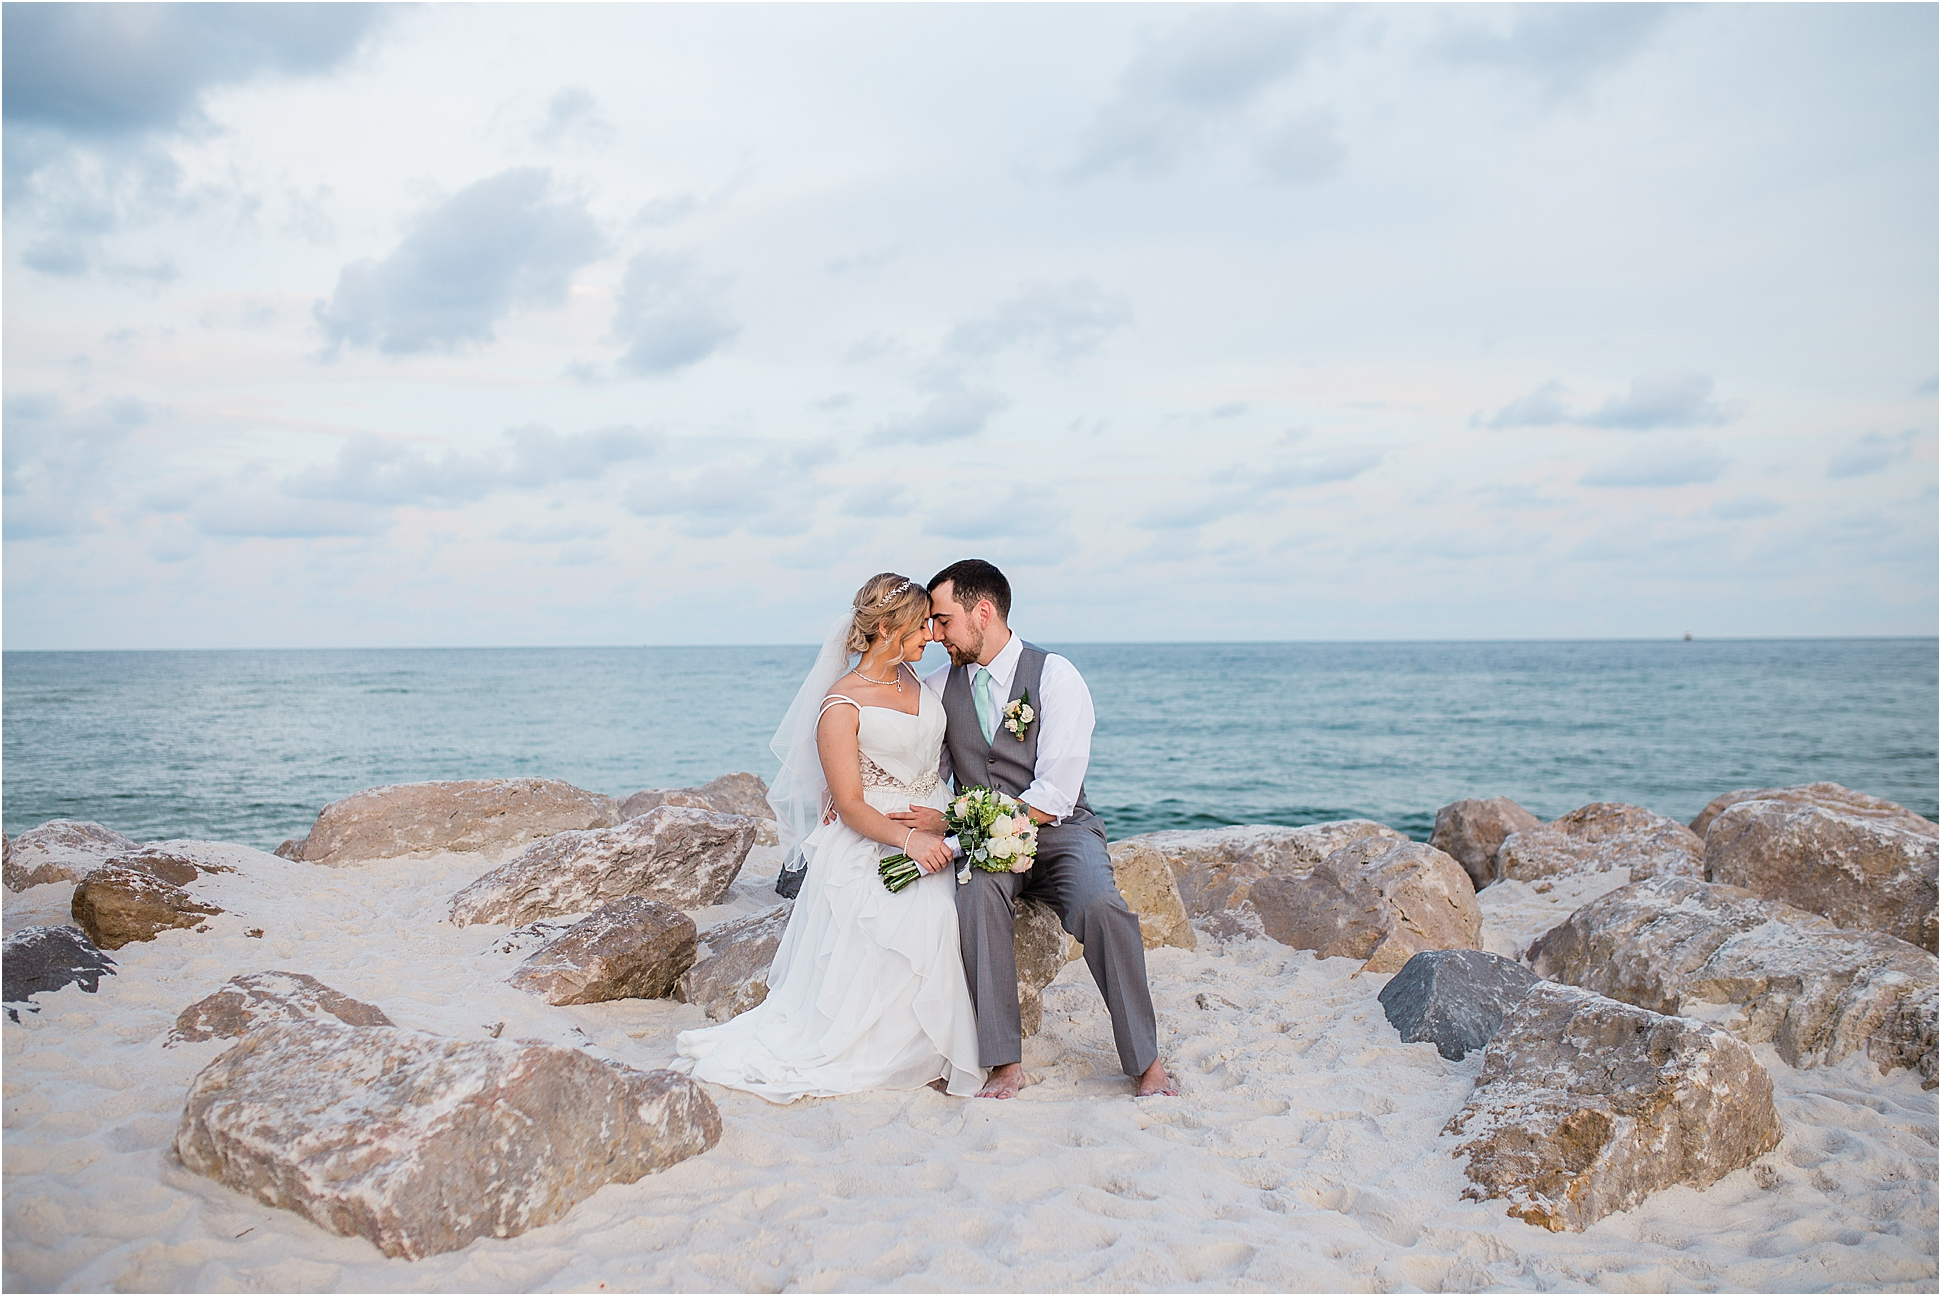 Timeless Wedding Photography in Gulf Shores